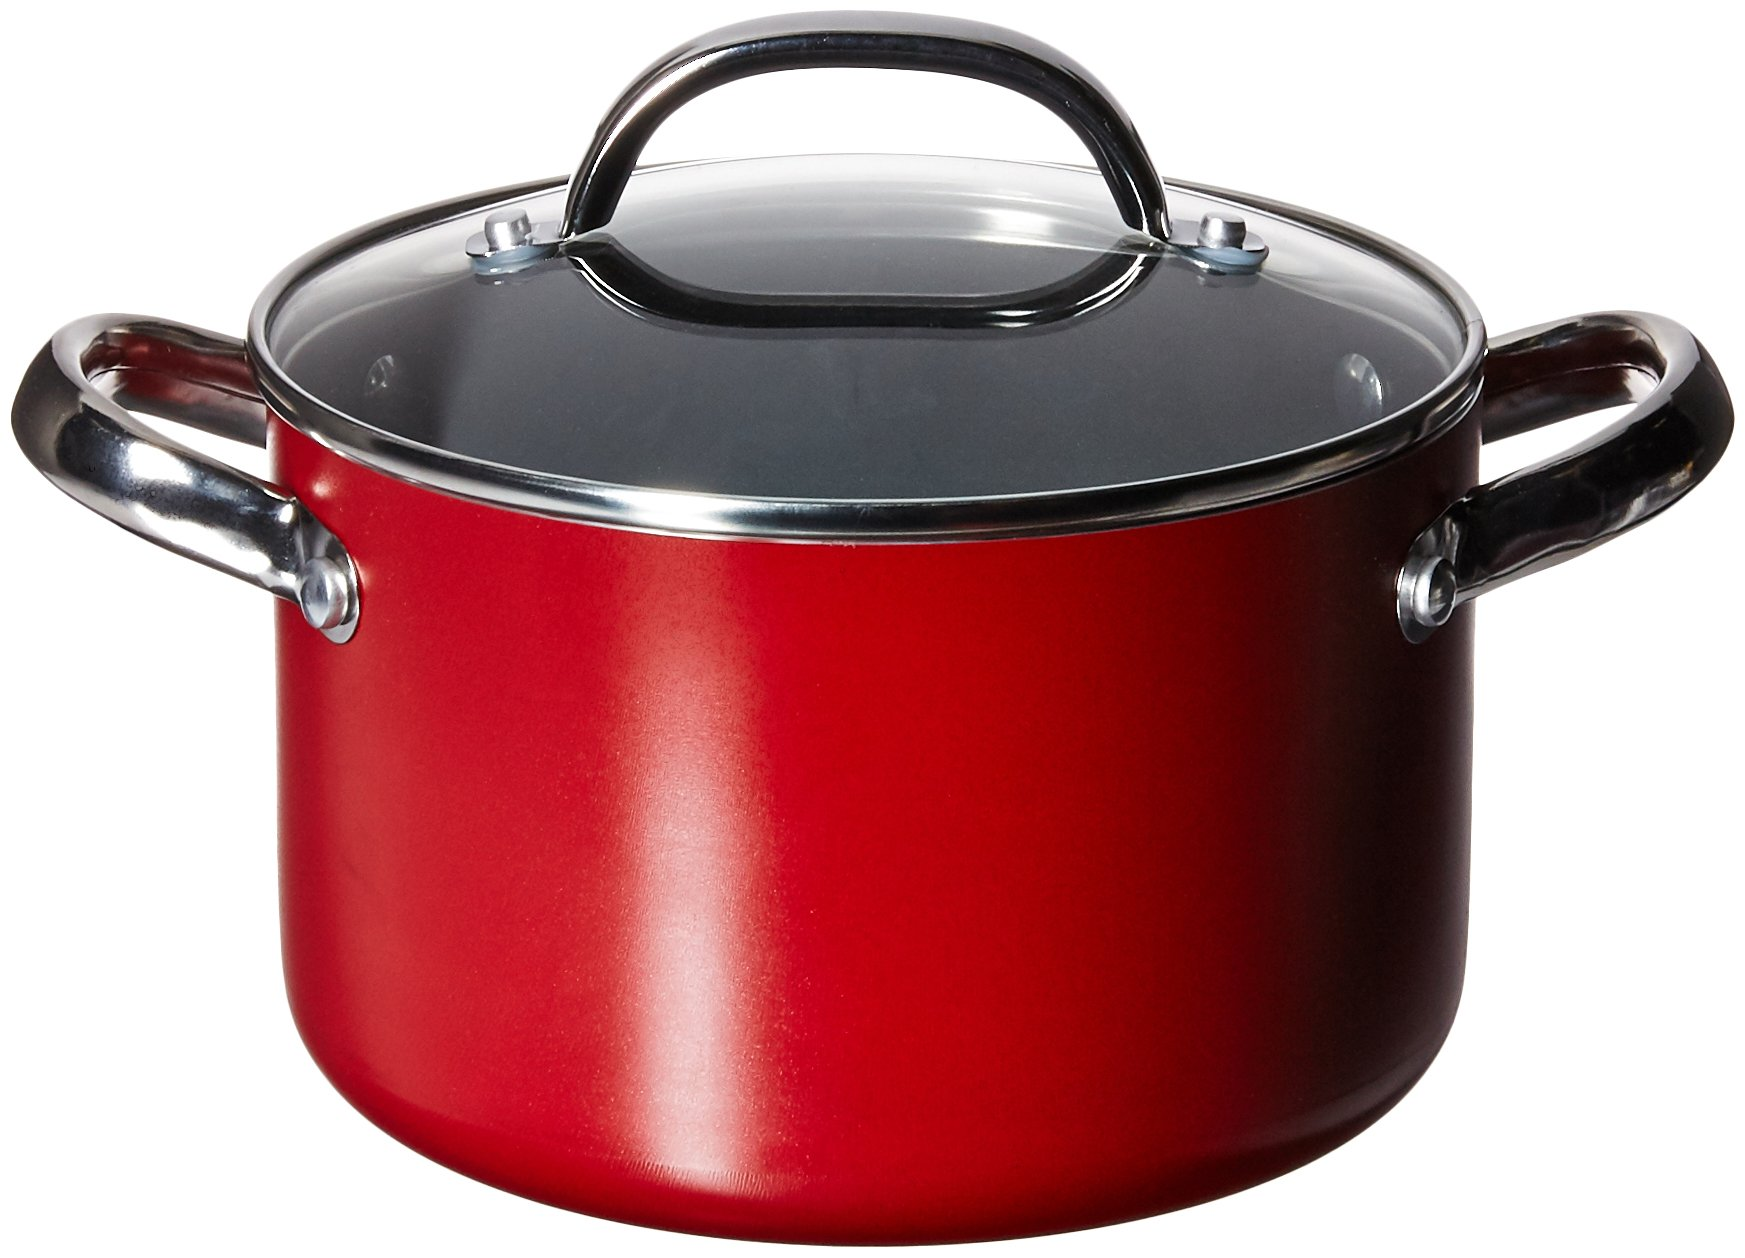 Farberware Buena Cocina Aluminum Nonstick Covered Soup Pot, 4-Quart, Red